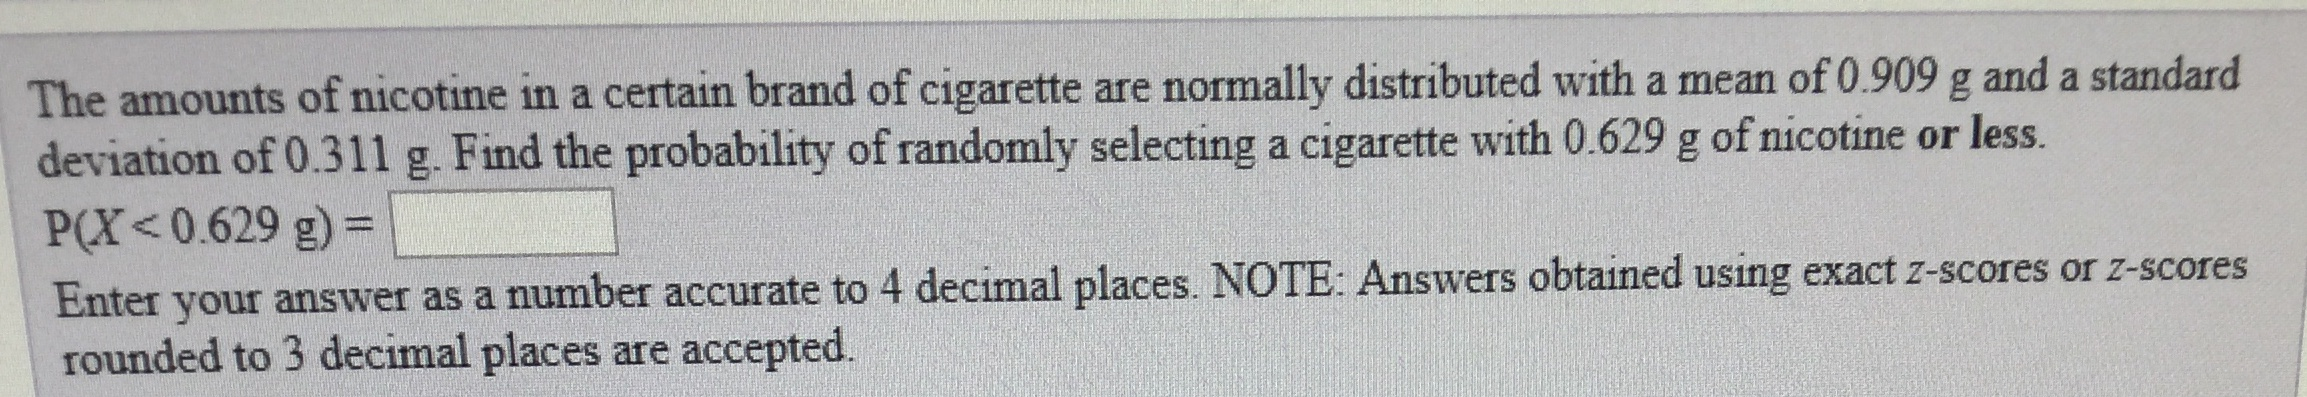 The amounts of nicotine in a certain brand of cigarette are normally distributed with a mean of 0.909 g and a standard deviation of 0.311 g. Find the probability of randomly selecting a cigarette with 0.629 g of nicotine or less. P(X<0.629 g) Enter your answer as a number accurate to 4 decimal places. NOTE: Answers obtained using exact z-scores or z-scores rounded to 3 decimal places are accepted.